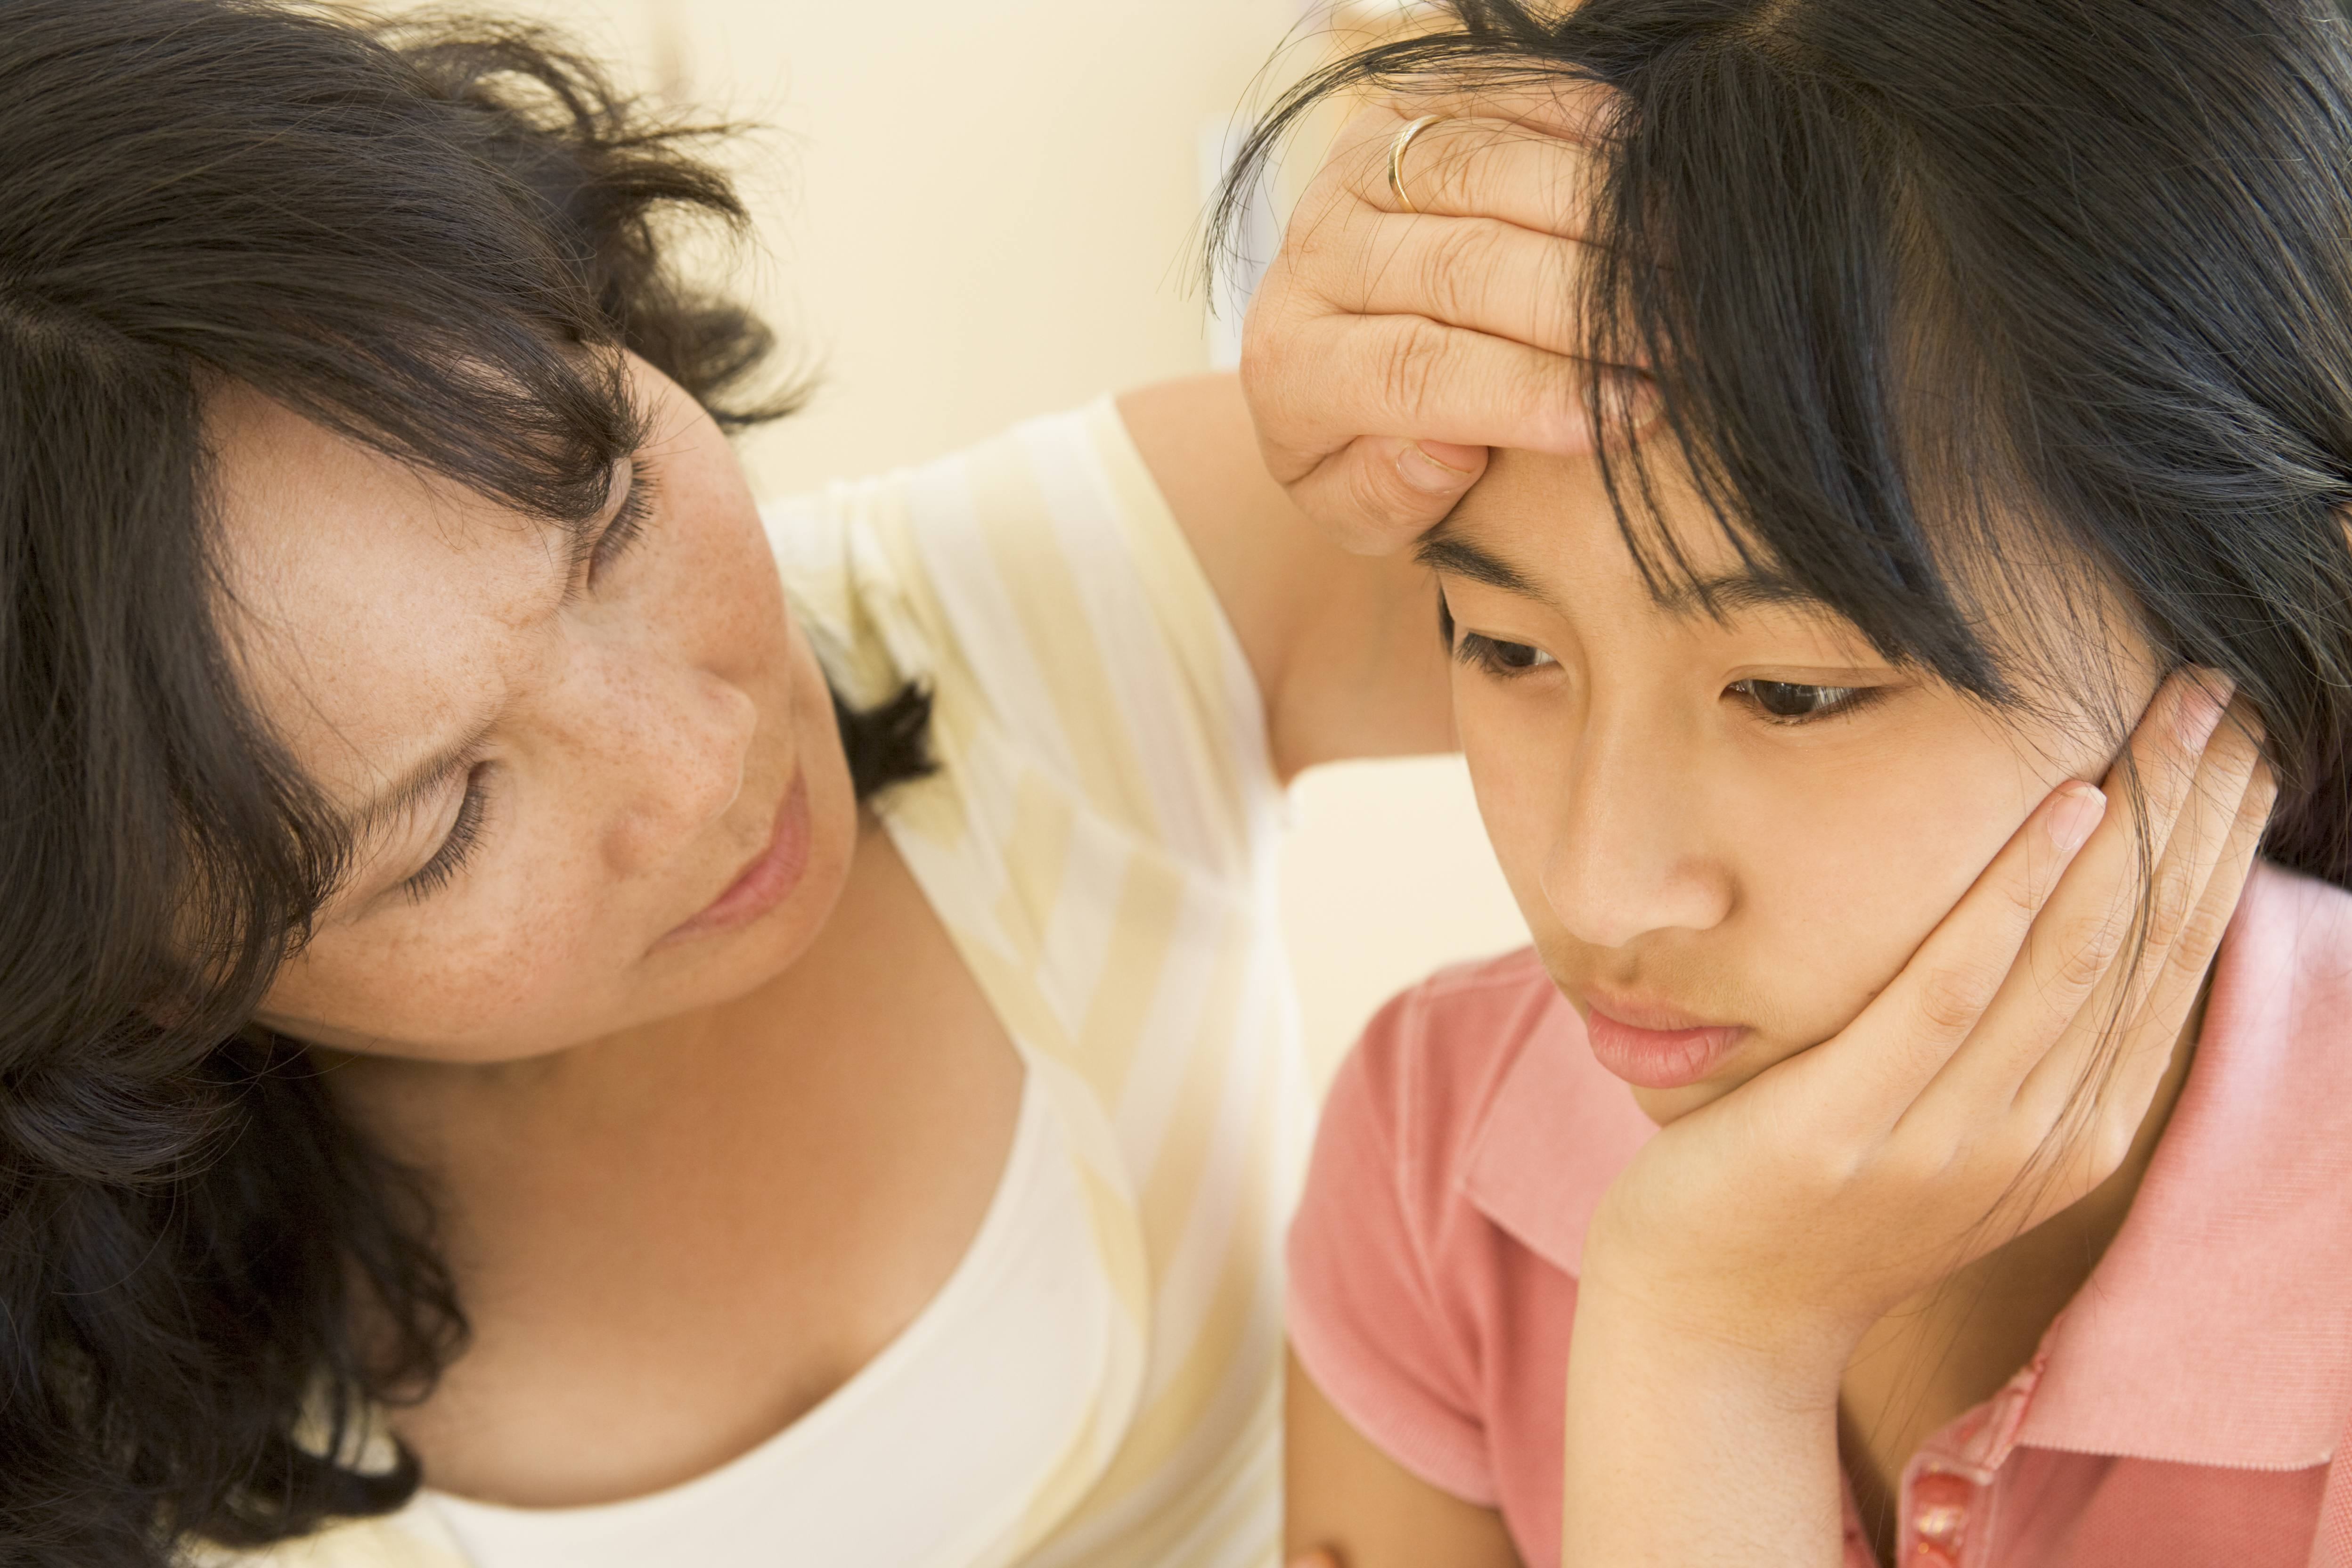 a young Asian teenage girl looking sick with cold or fever and mother holding her face